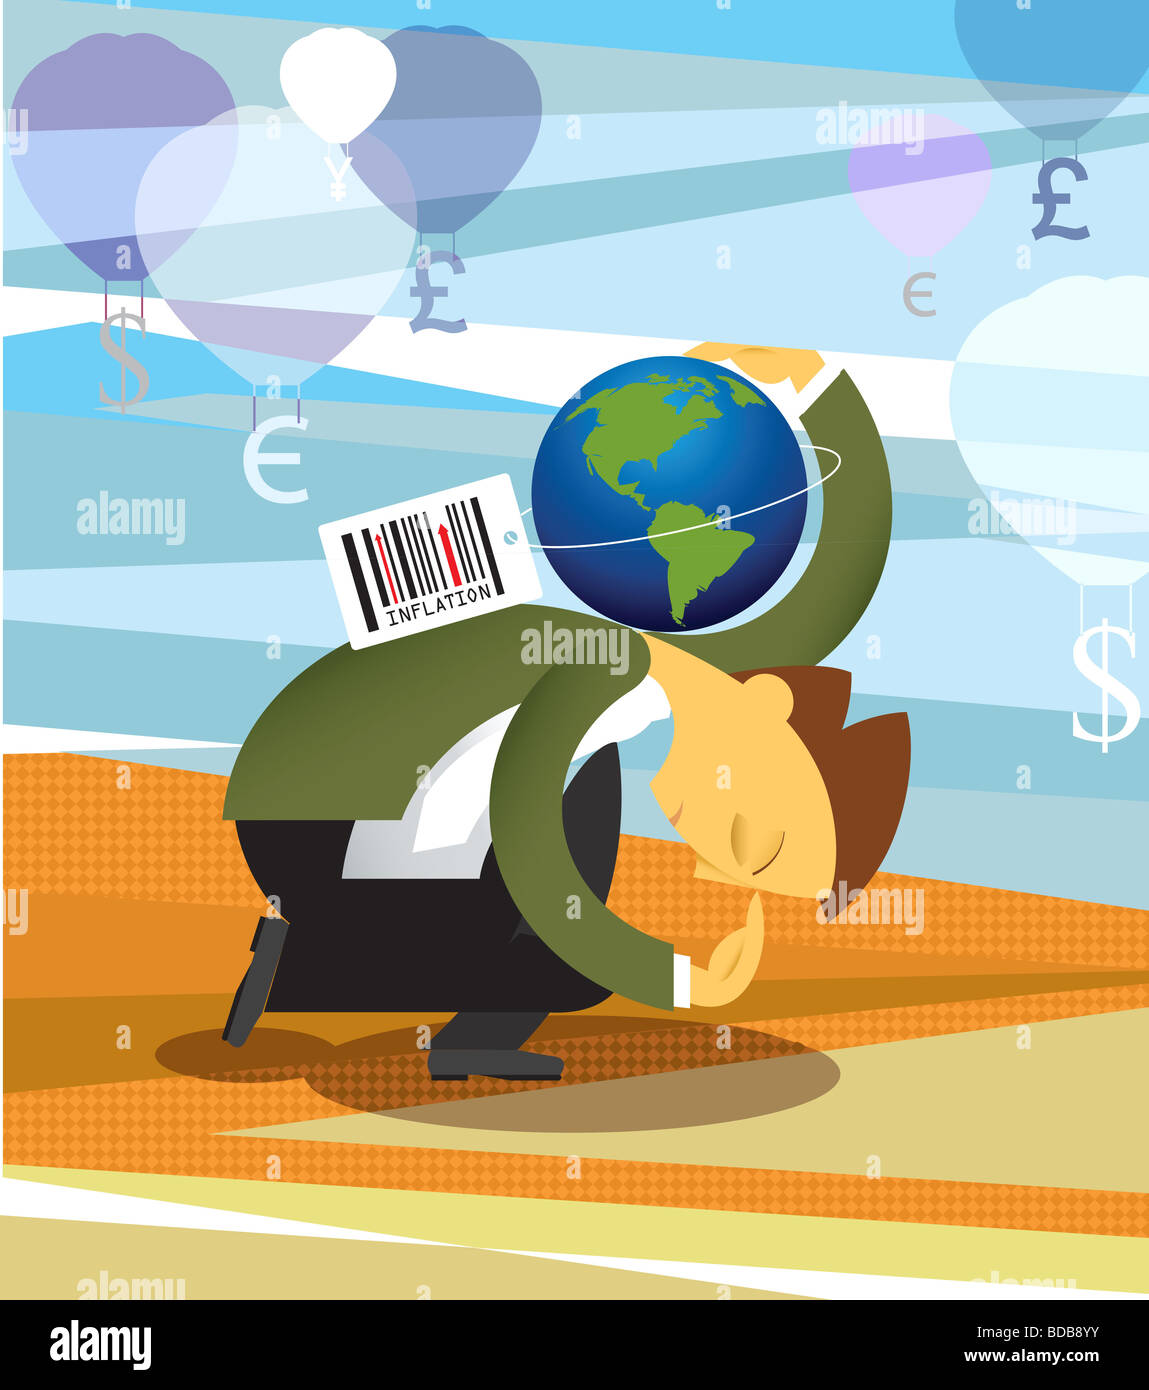 Conceptual image representing inflation in economy - Stock Image